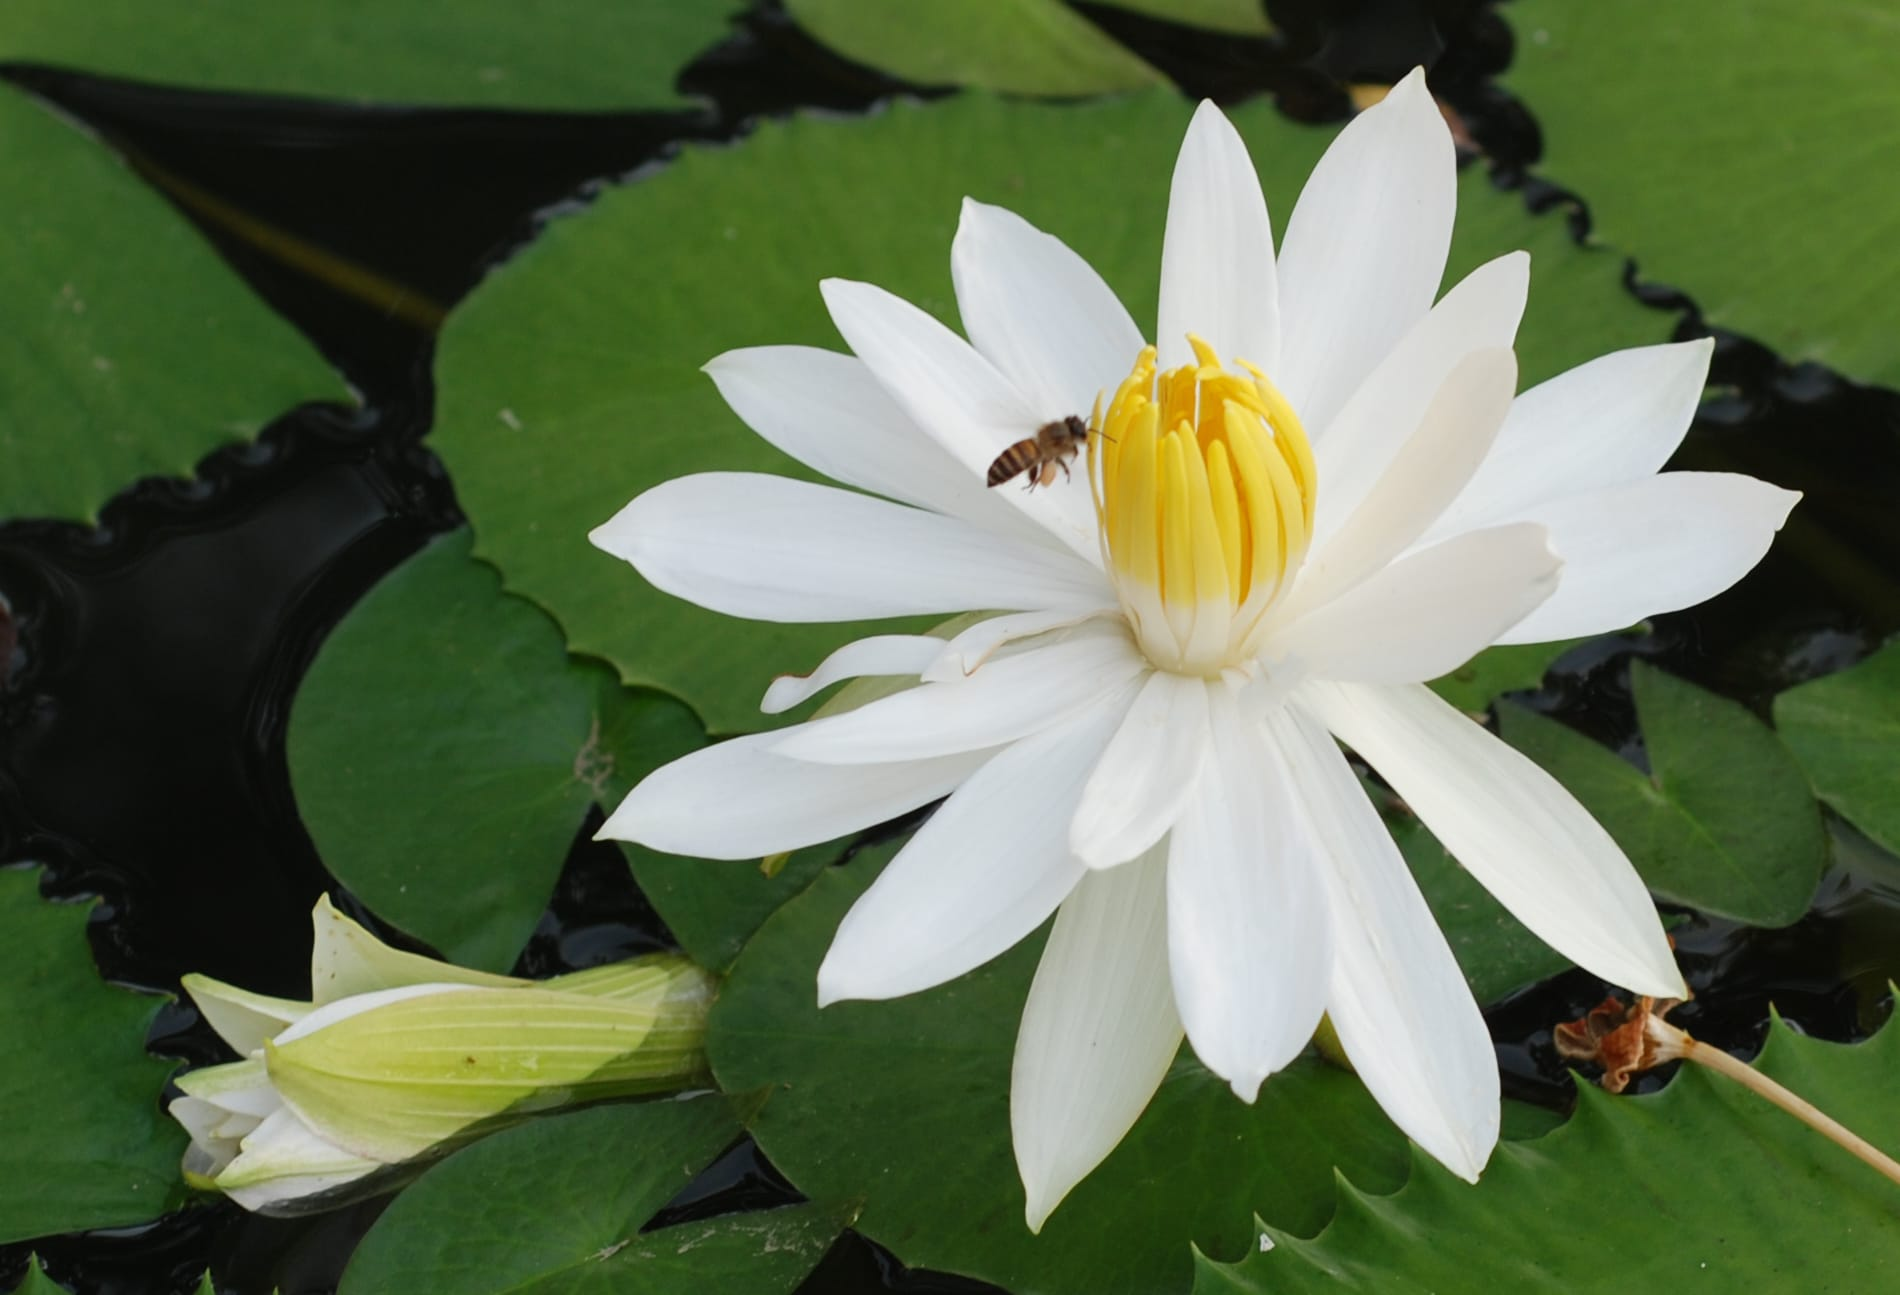 Read more about the article Beauty & Subtle Science On Mondays – Let's be Kabir's Friend, follow him and Gaze to the Infinite Beauty from the Lotus with 1000 Petals